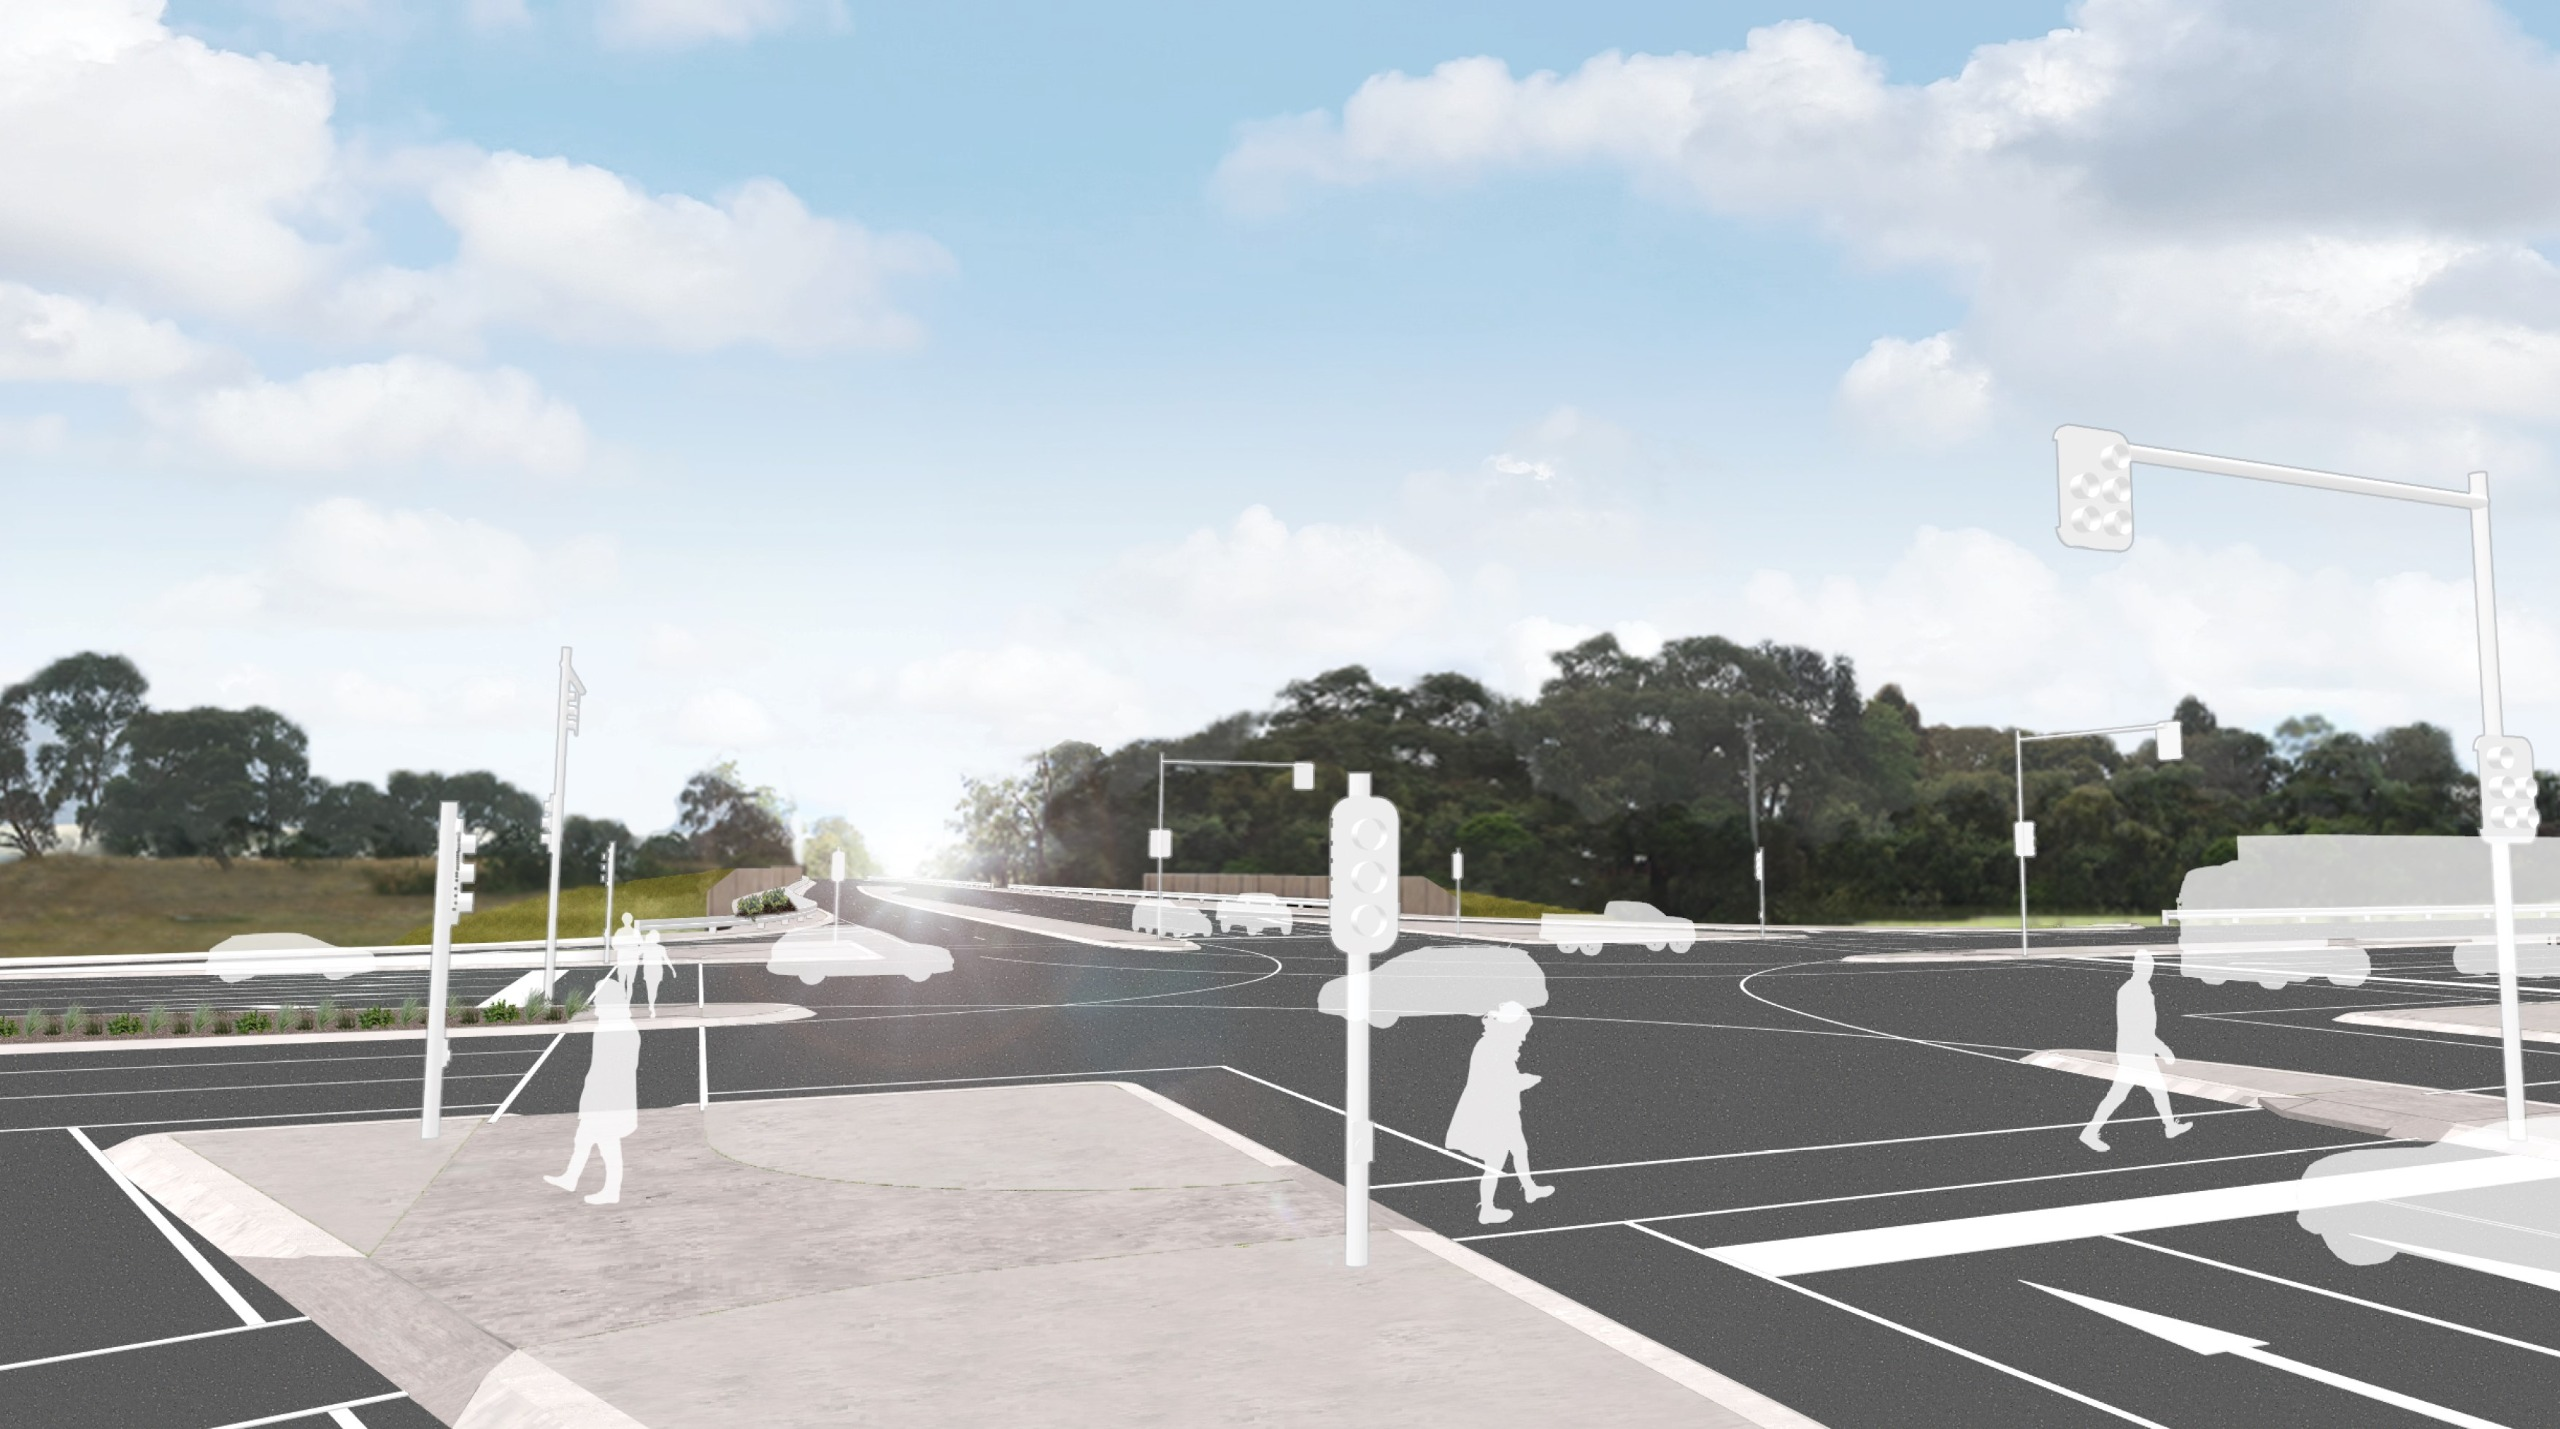 Artist's impression of pedestrians on the Ballarto Road intersection 1 year after project completion